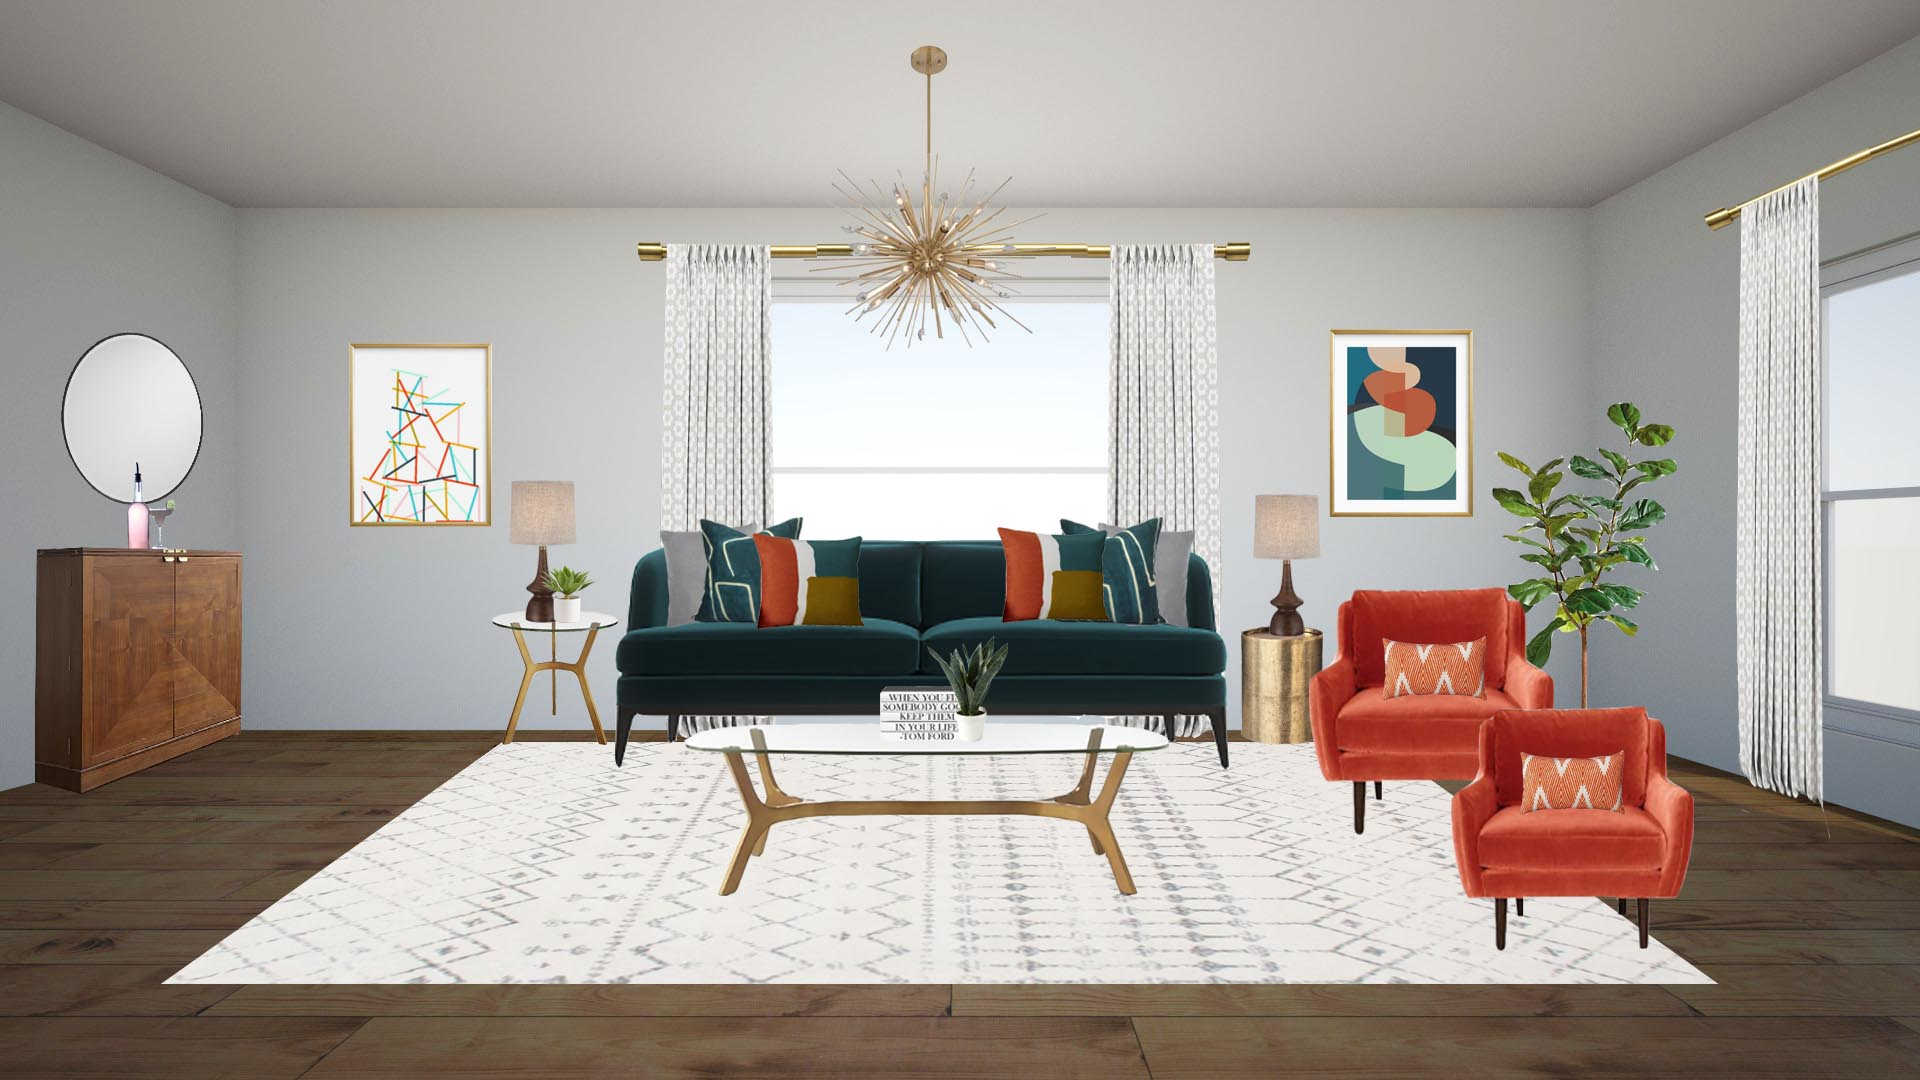 "SETUP INSTRUCTIONS:    -Lay down your rug as shown in floor plan  -Place your large items where they go according to your floorplan. Sofa, chairs, coffee table, bar cabinet, and console table.  -Now place your smaller items. End tables, accessories, lamps.  -Now it's time to hang lighting, draperies, and artwork.  LAMPS: Left table//Place lamp in center of the table. Layer plant in front and over a couple inches to the right. These items should touch.  PILLOWS: Start by placing the largest pillows on the outside and layering in as they get smaller. This should work out just like your rendering shows. For the orange lumbar pillows, center them on the orange velvet chairs.  COFFEE TABLE: Place a stack of 5 to 6 books on the coffee table and 4-6"" to the right place the snake plant. You could also set a wood or gold tray that you could set these items in.  ARTWORK: Typically you want to center the artwork between the ceiling and the floor. Make sure not to hang too high as this will throw off the balance of the room. Center each piece on its specified art wall. See below  SPECIFICS FOR ARTWORK: Bottom of the artwork should be 3 feet from the floor and outside (opposite of window) of artwork should be about 2' from the wall.  DRAPERIES: Detailed instructions under draperies on shopping list :)"